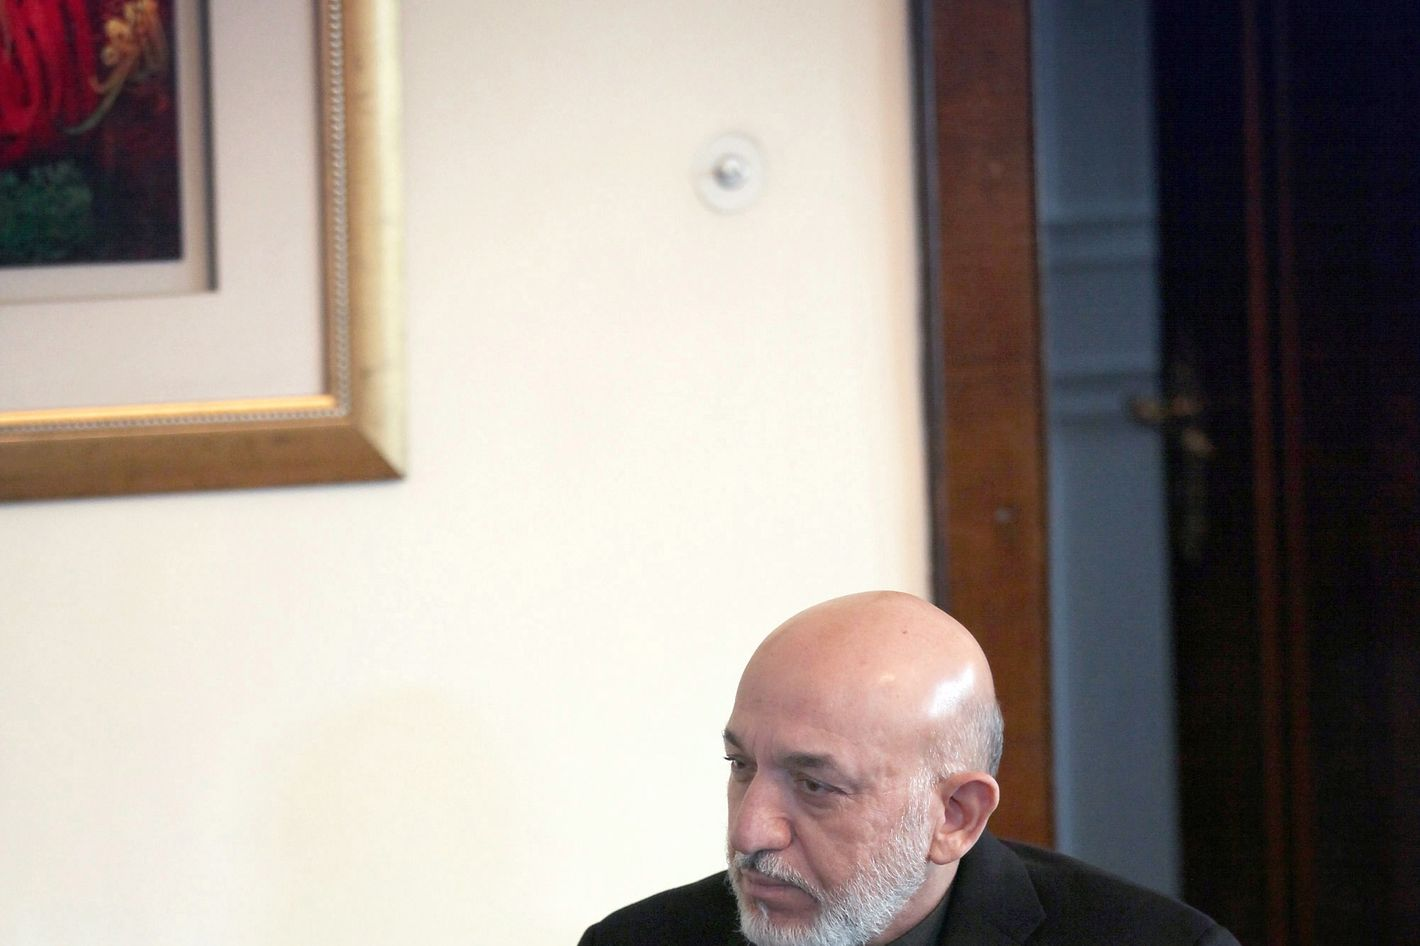 Afghan President Hamid Karzai talks with U.S. Secretary of Defense Leon Panetta at the Presidential Pallace on March 15, 2012 in Kabul, Afghanistan.